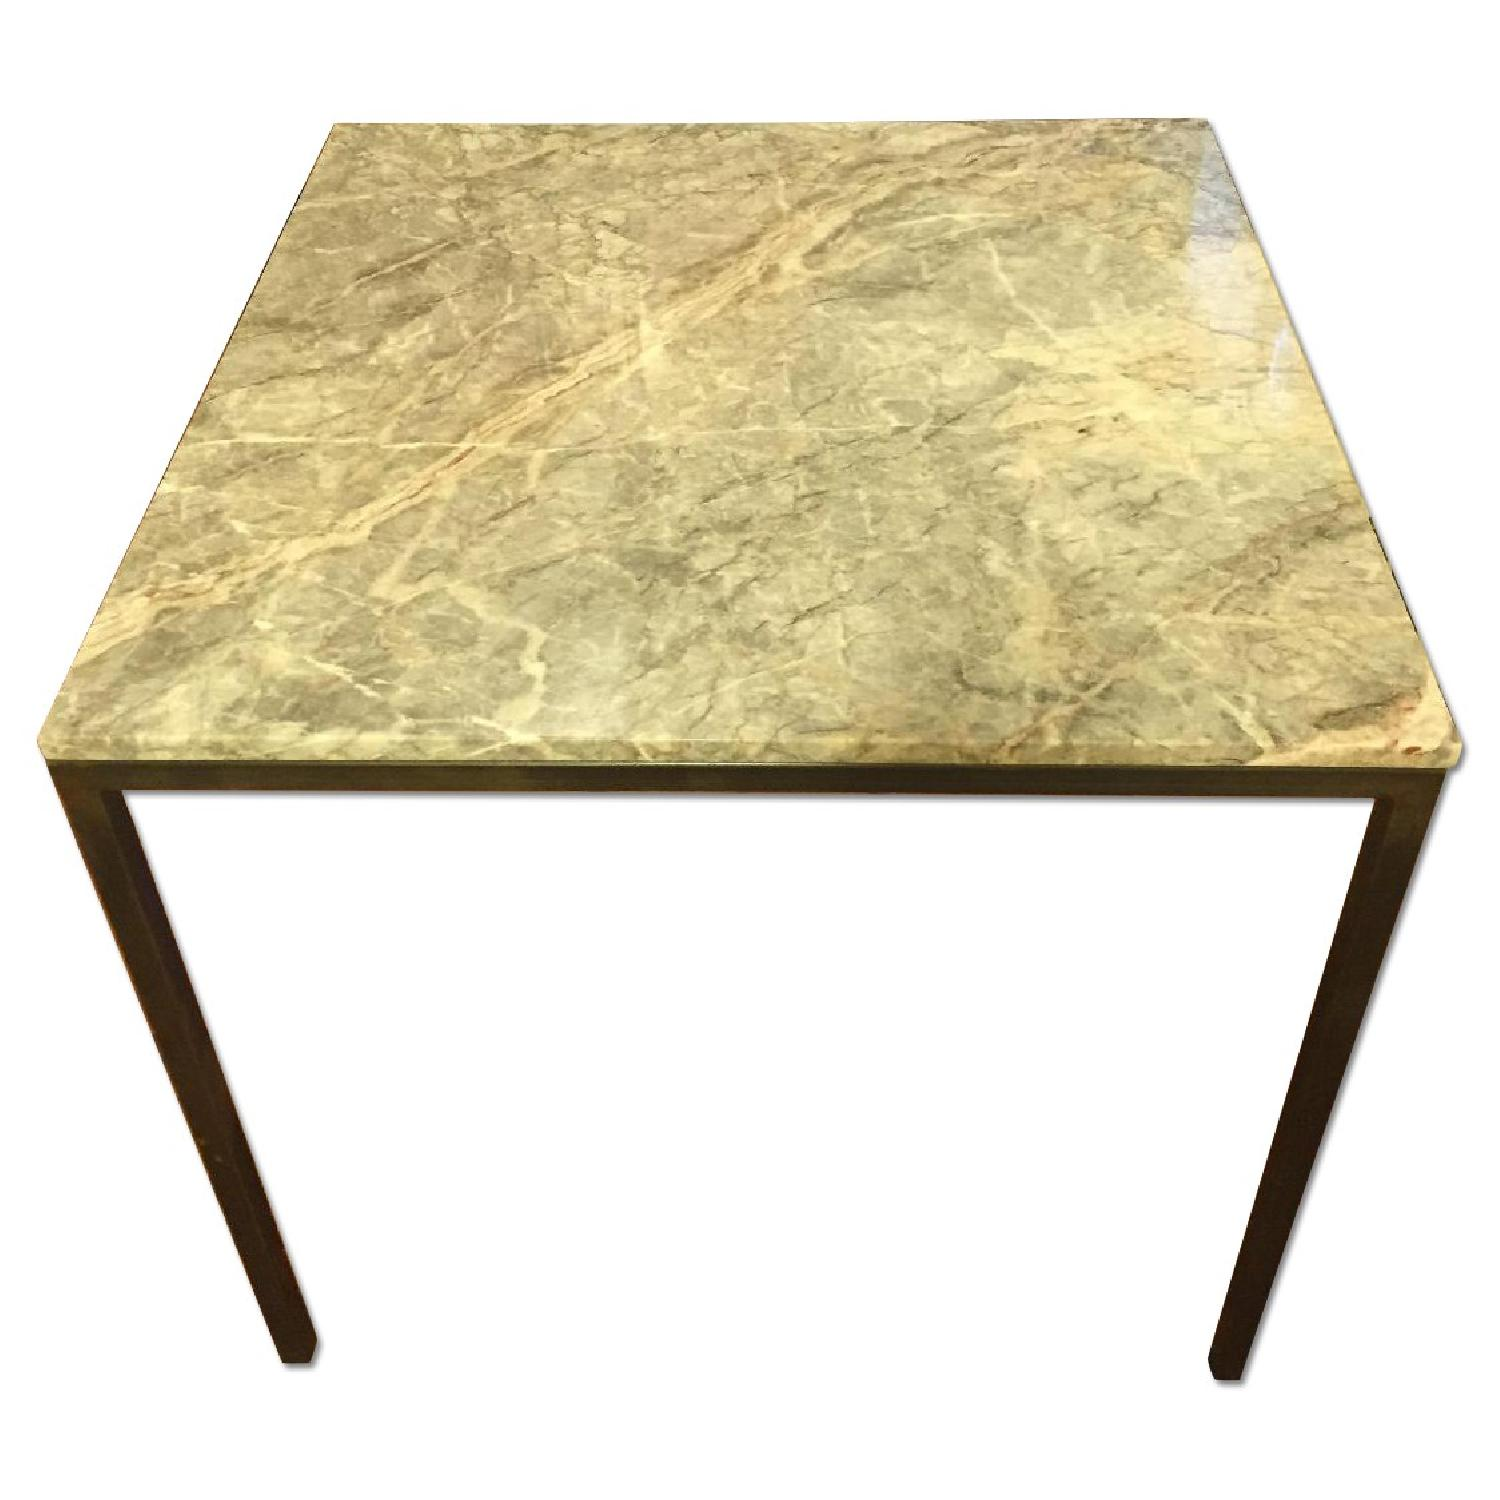 Marble Kitchen Table - image-0